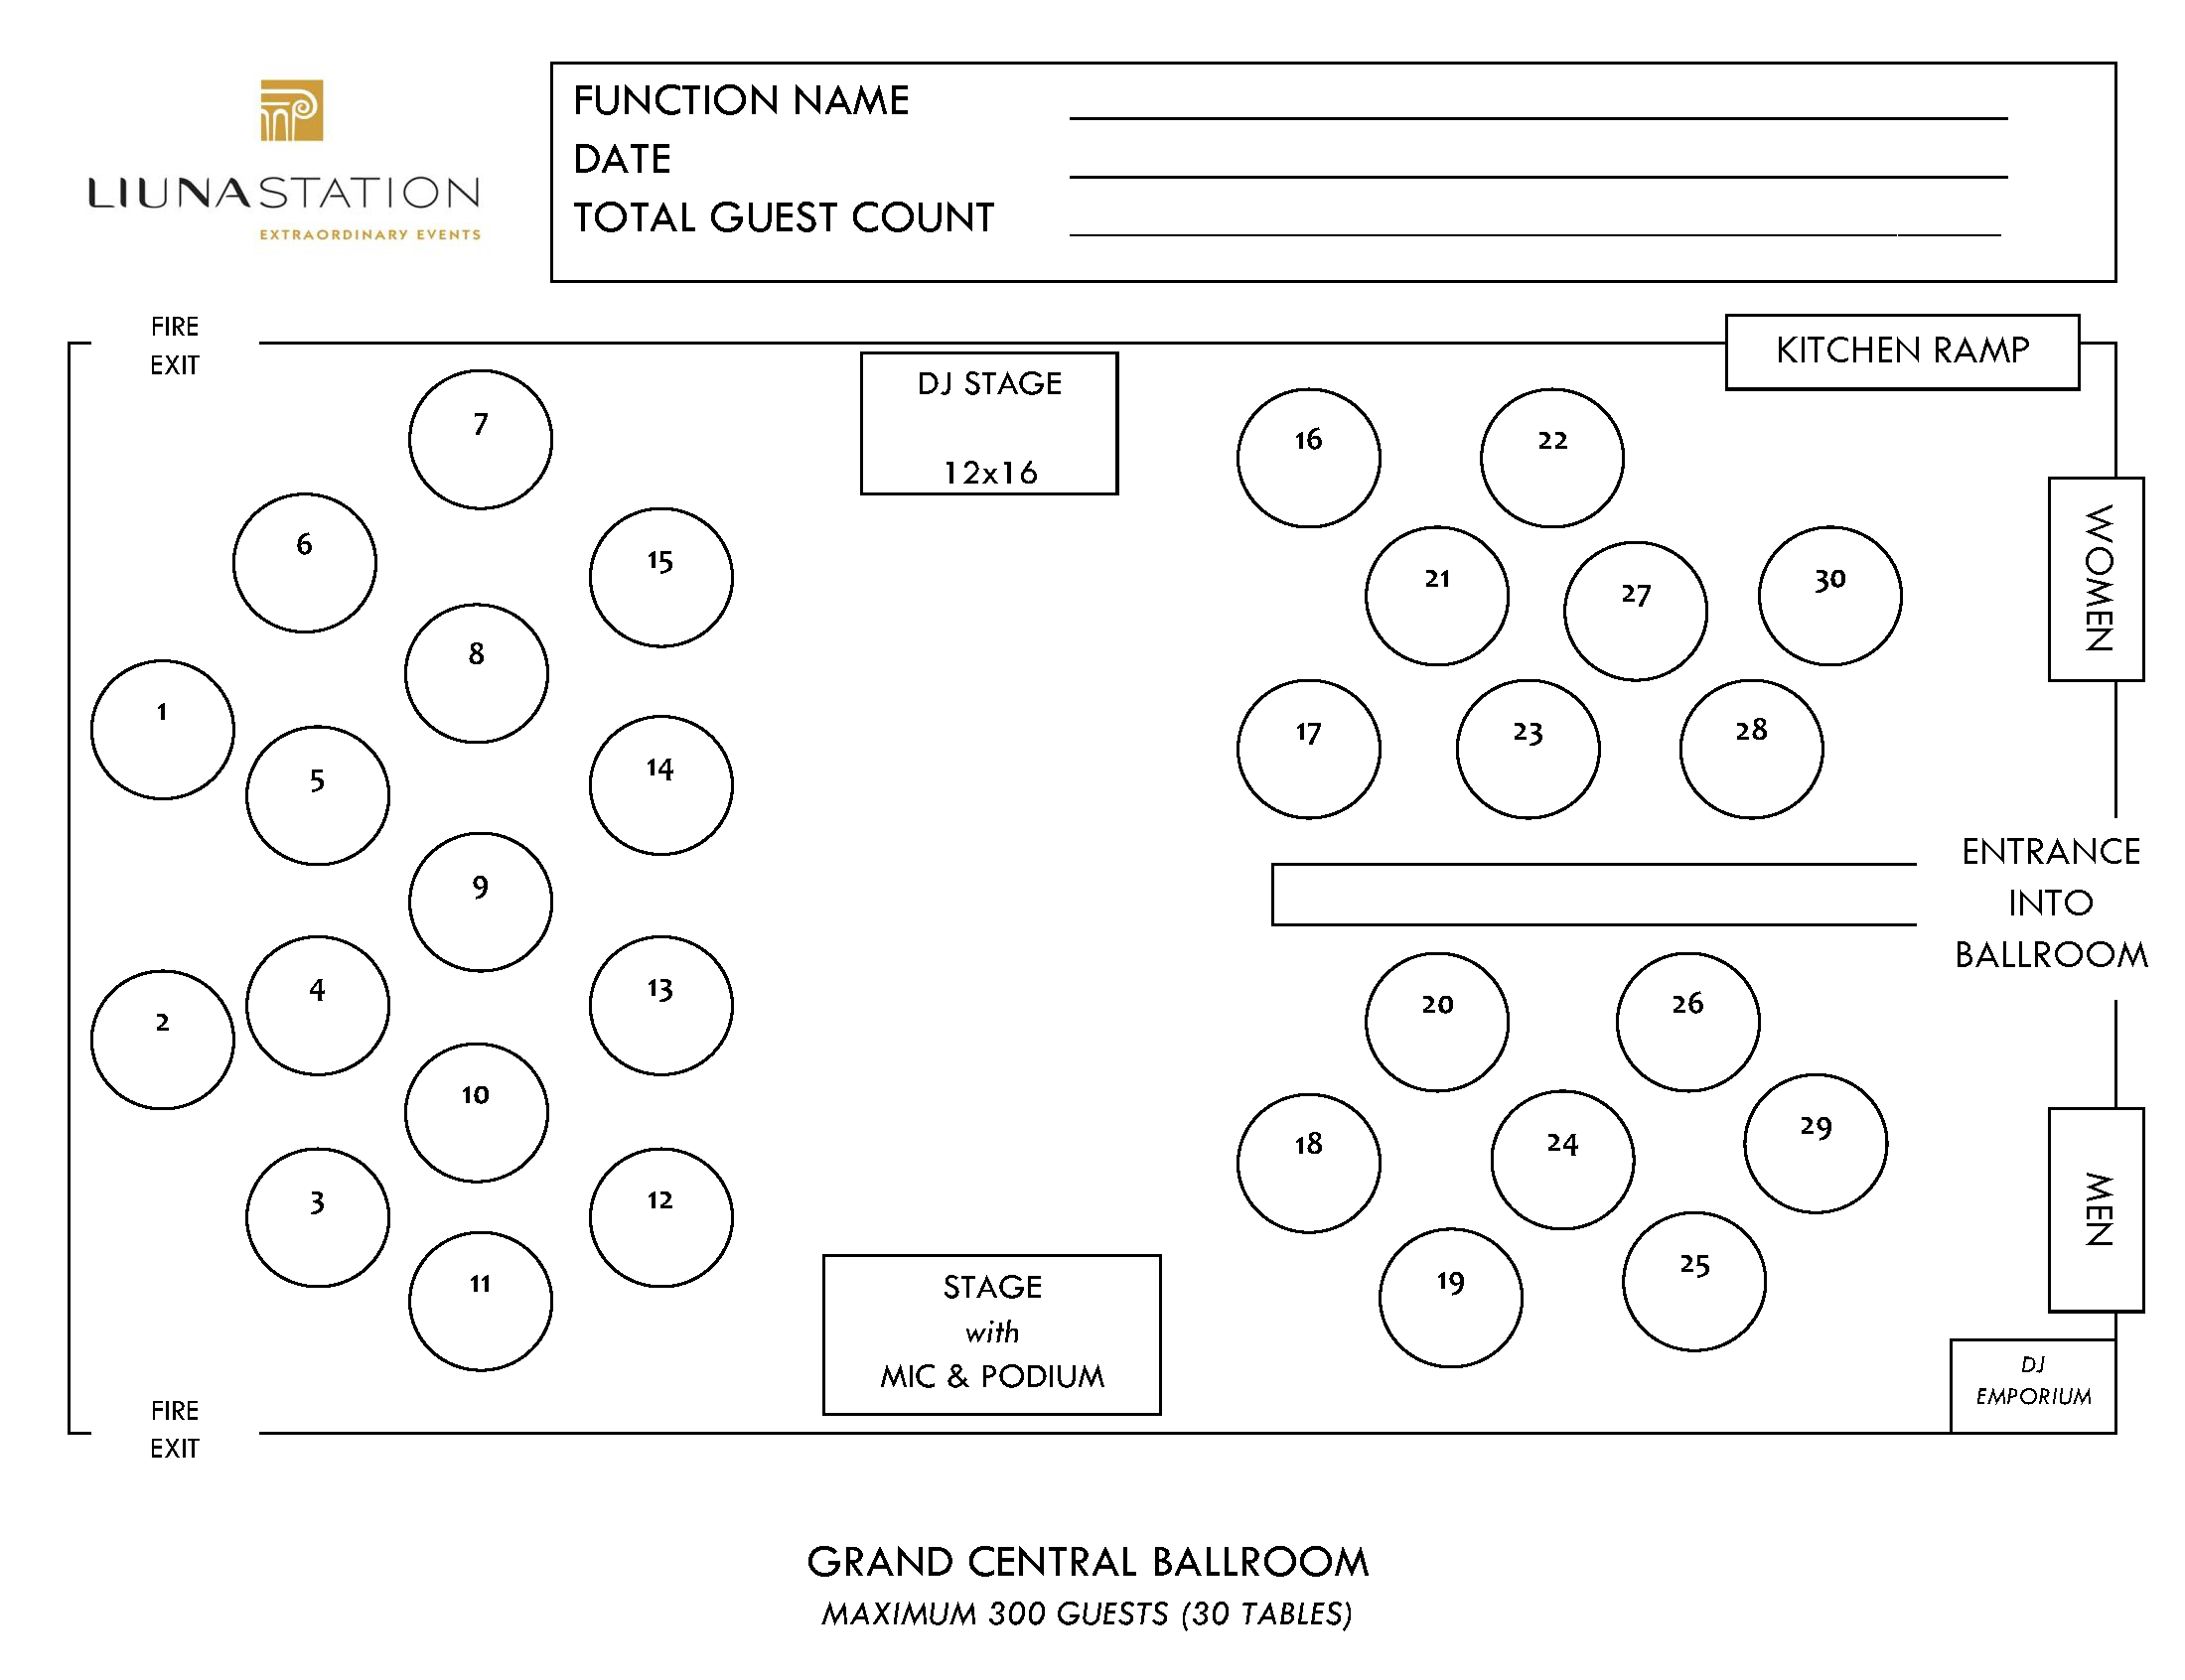 Station Floorplans - Grand Central Ballroom